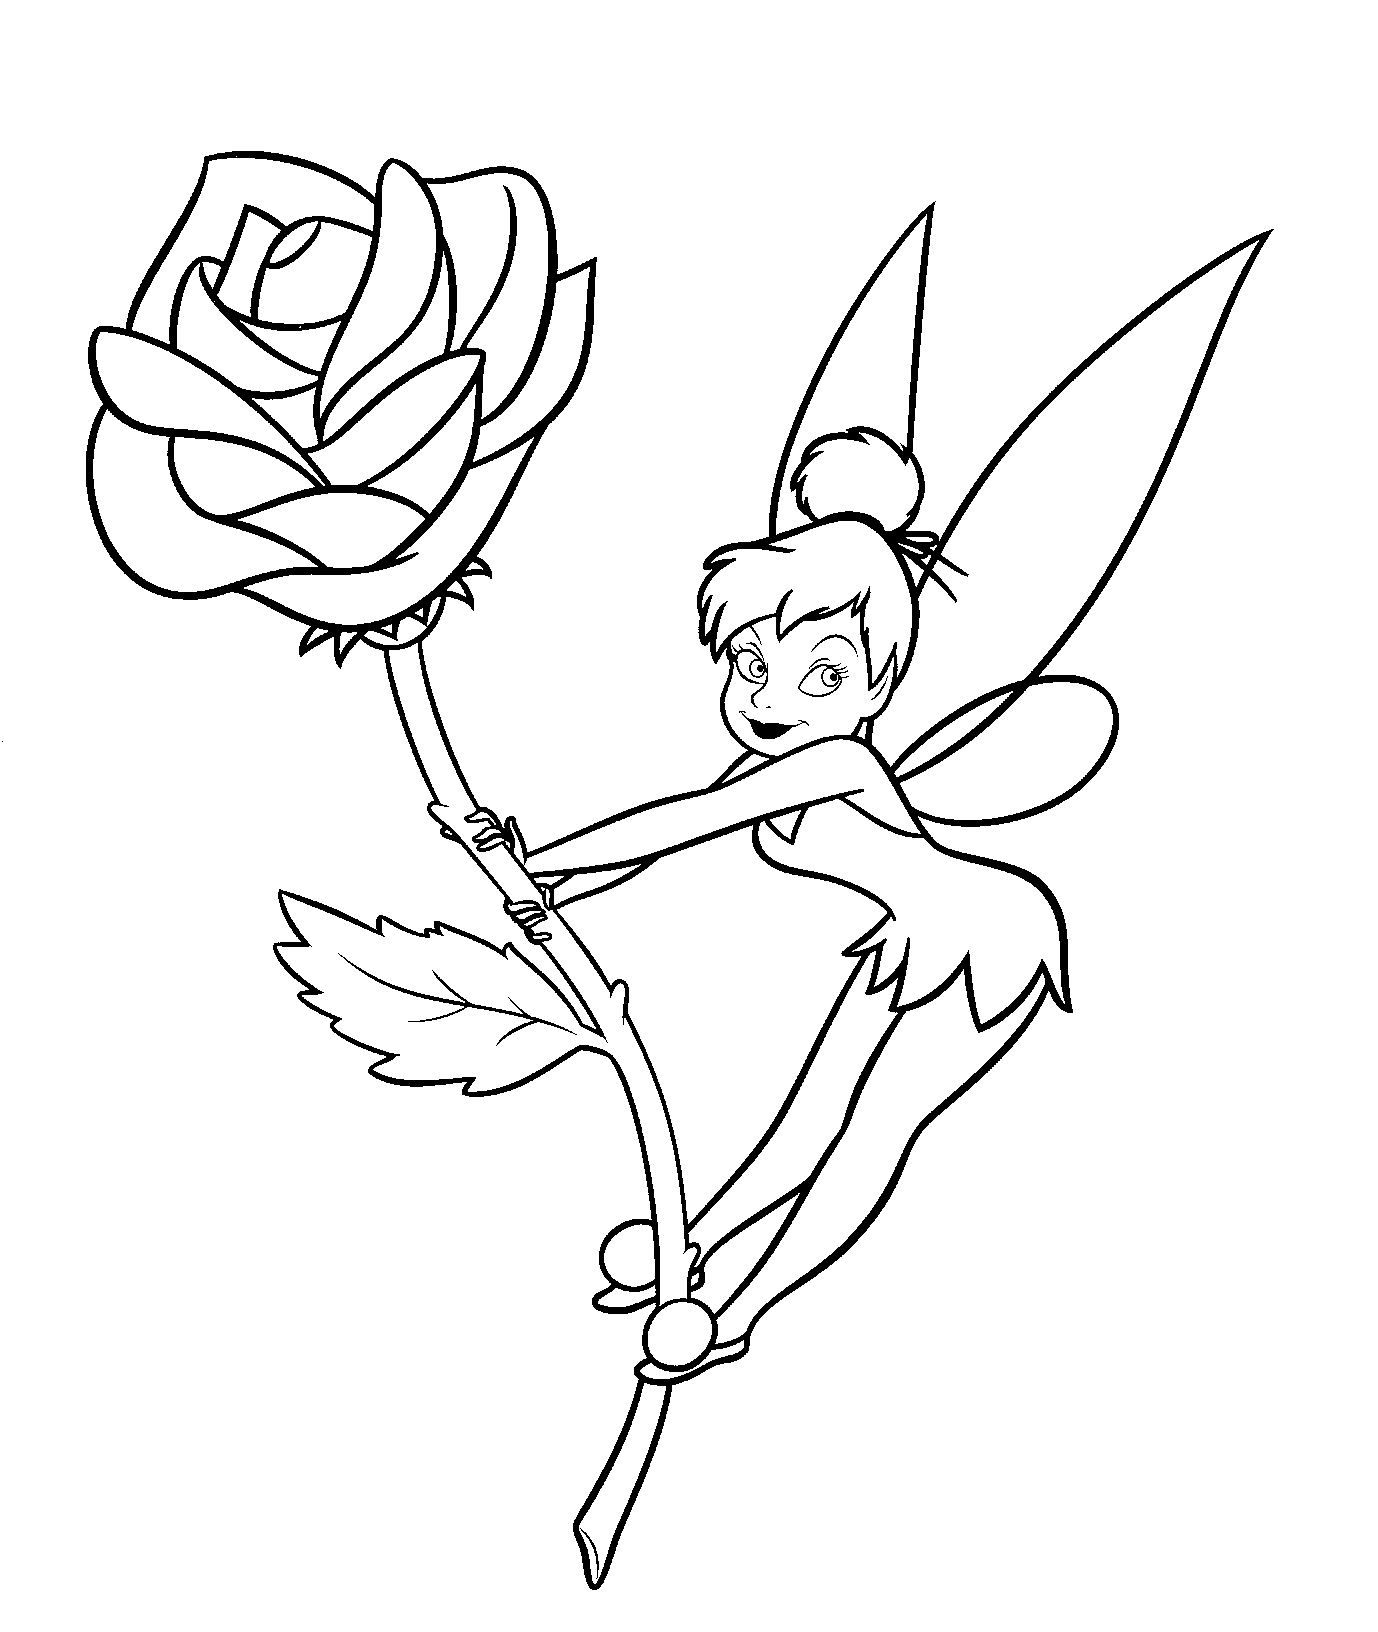 Tinkerbell Coloring Pages Fairy Coloring Pages Tinkerbell Coloring Pages Disney Coloring Pages